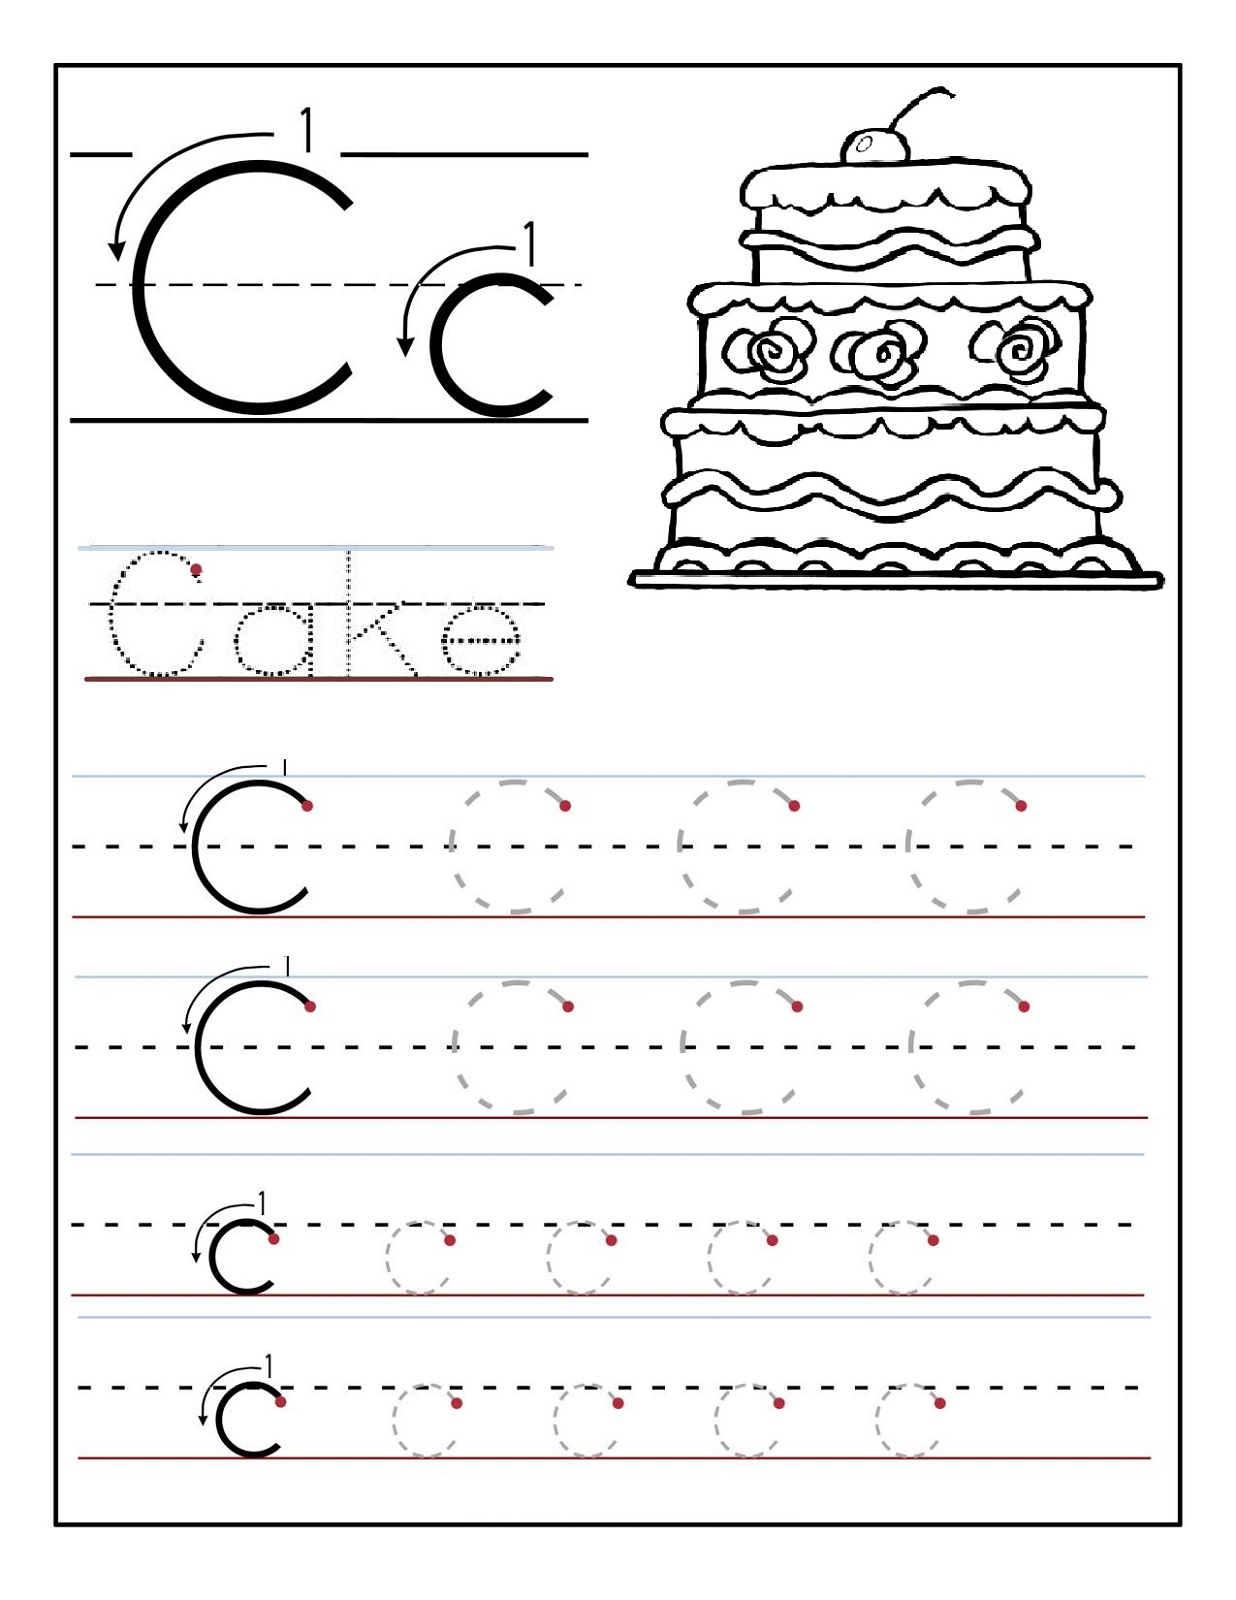 Preschool Alphabet Worksheets on Preschool Sorting